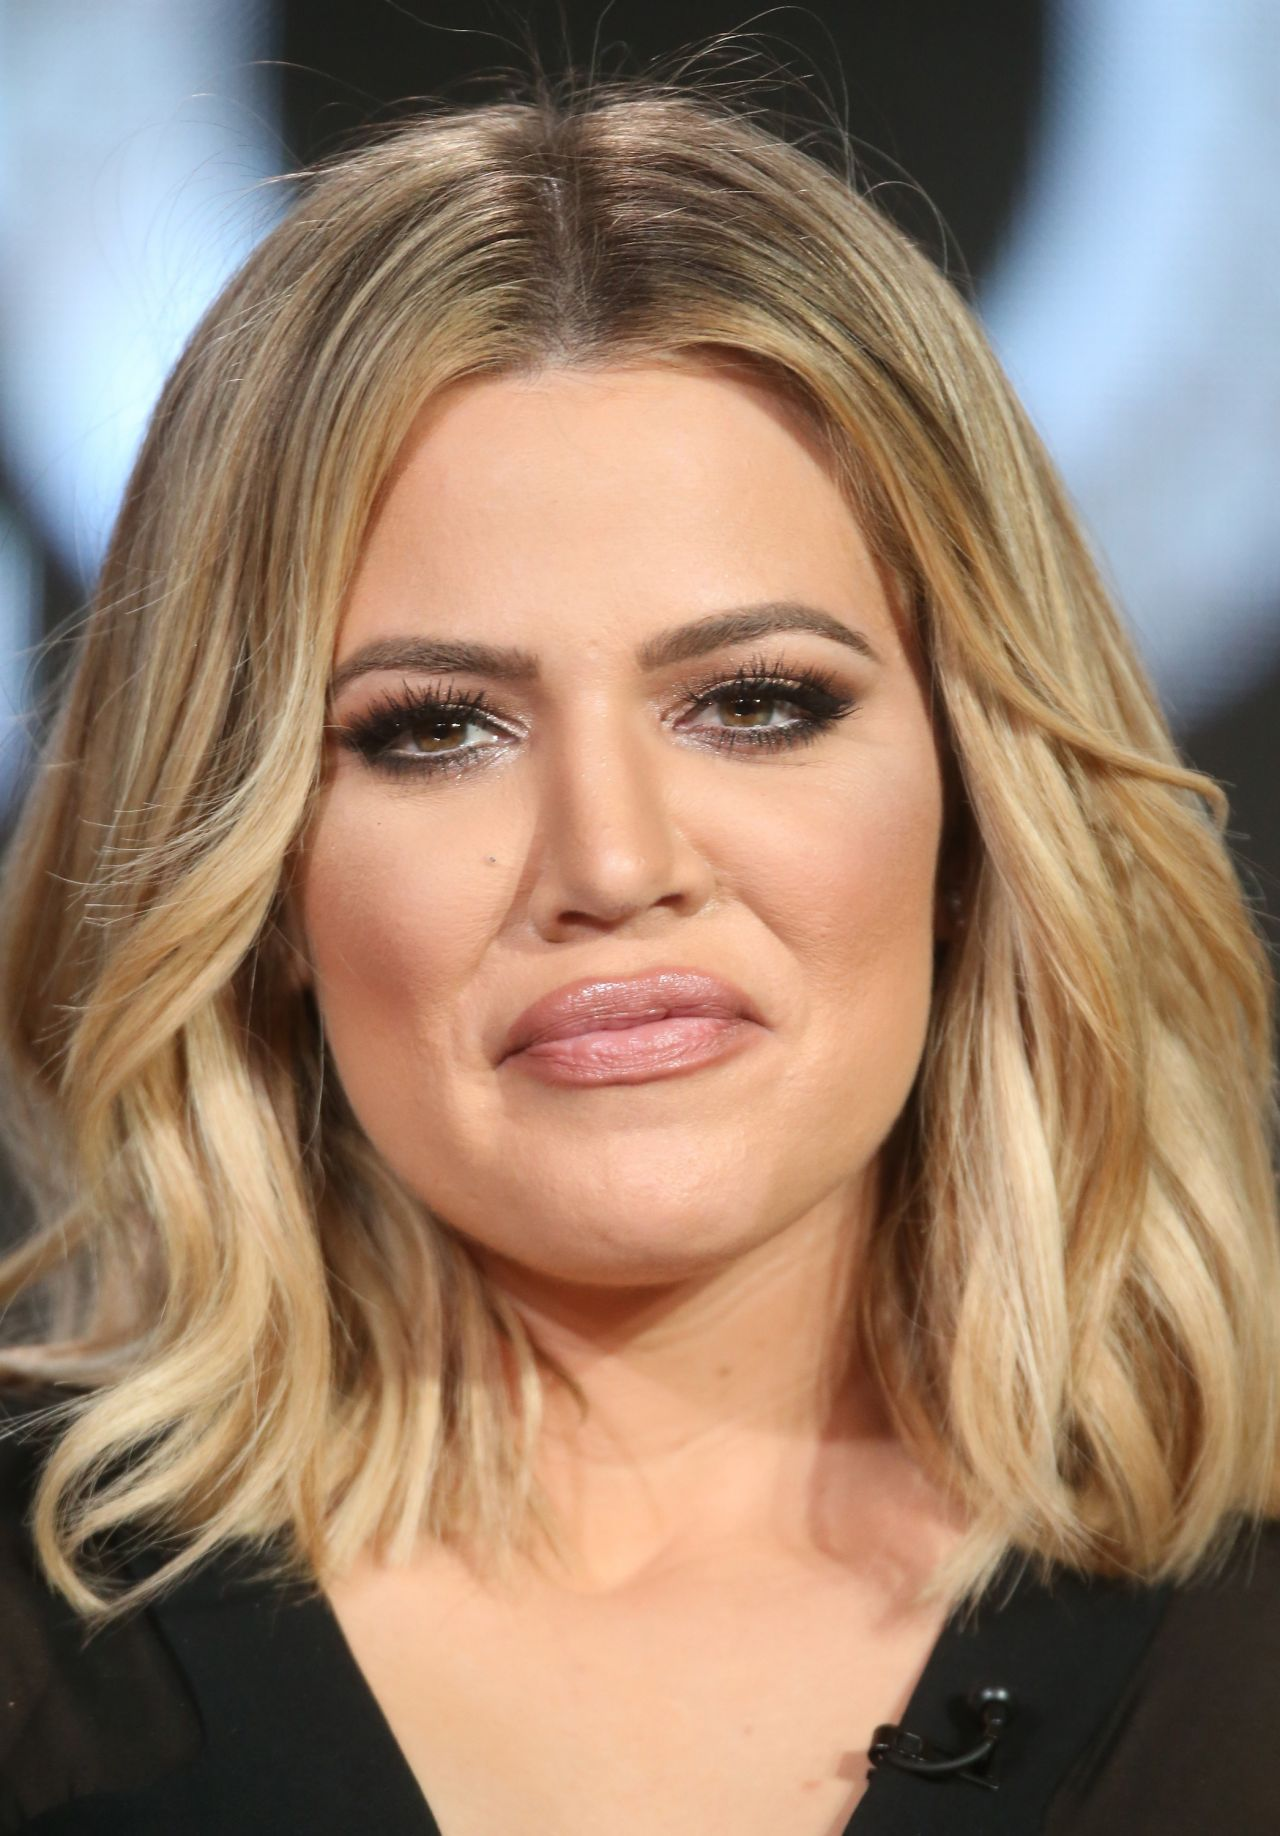 khloe kardashian - photo #28